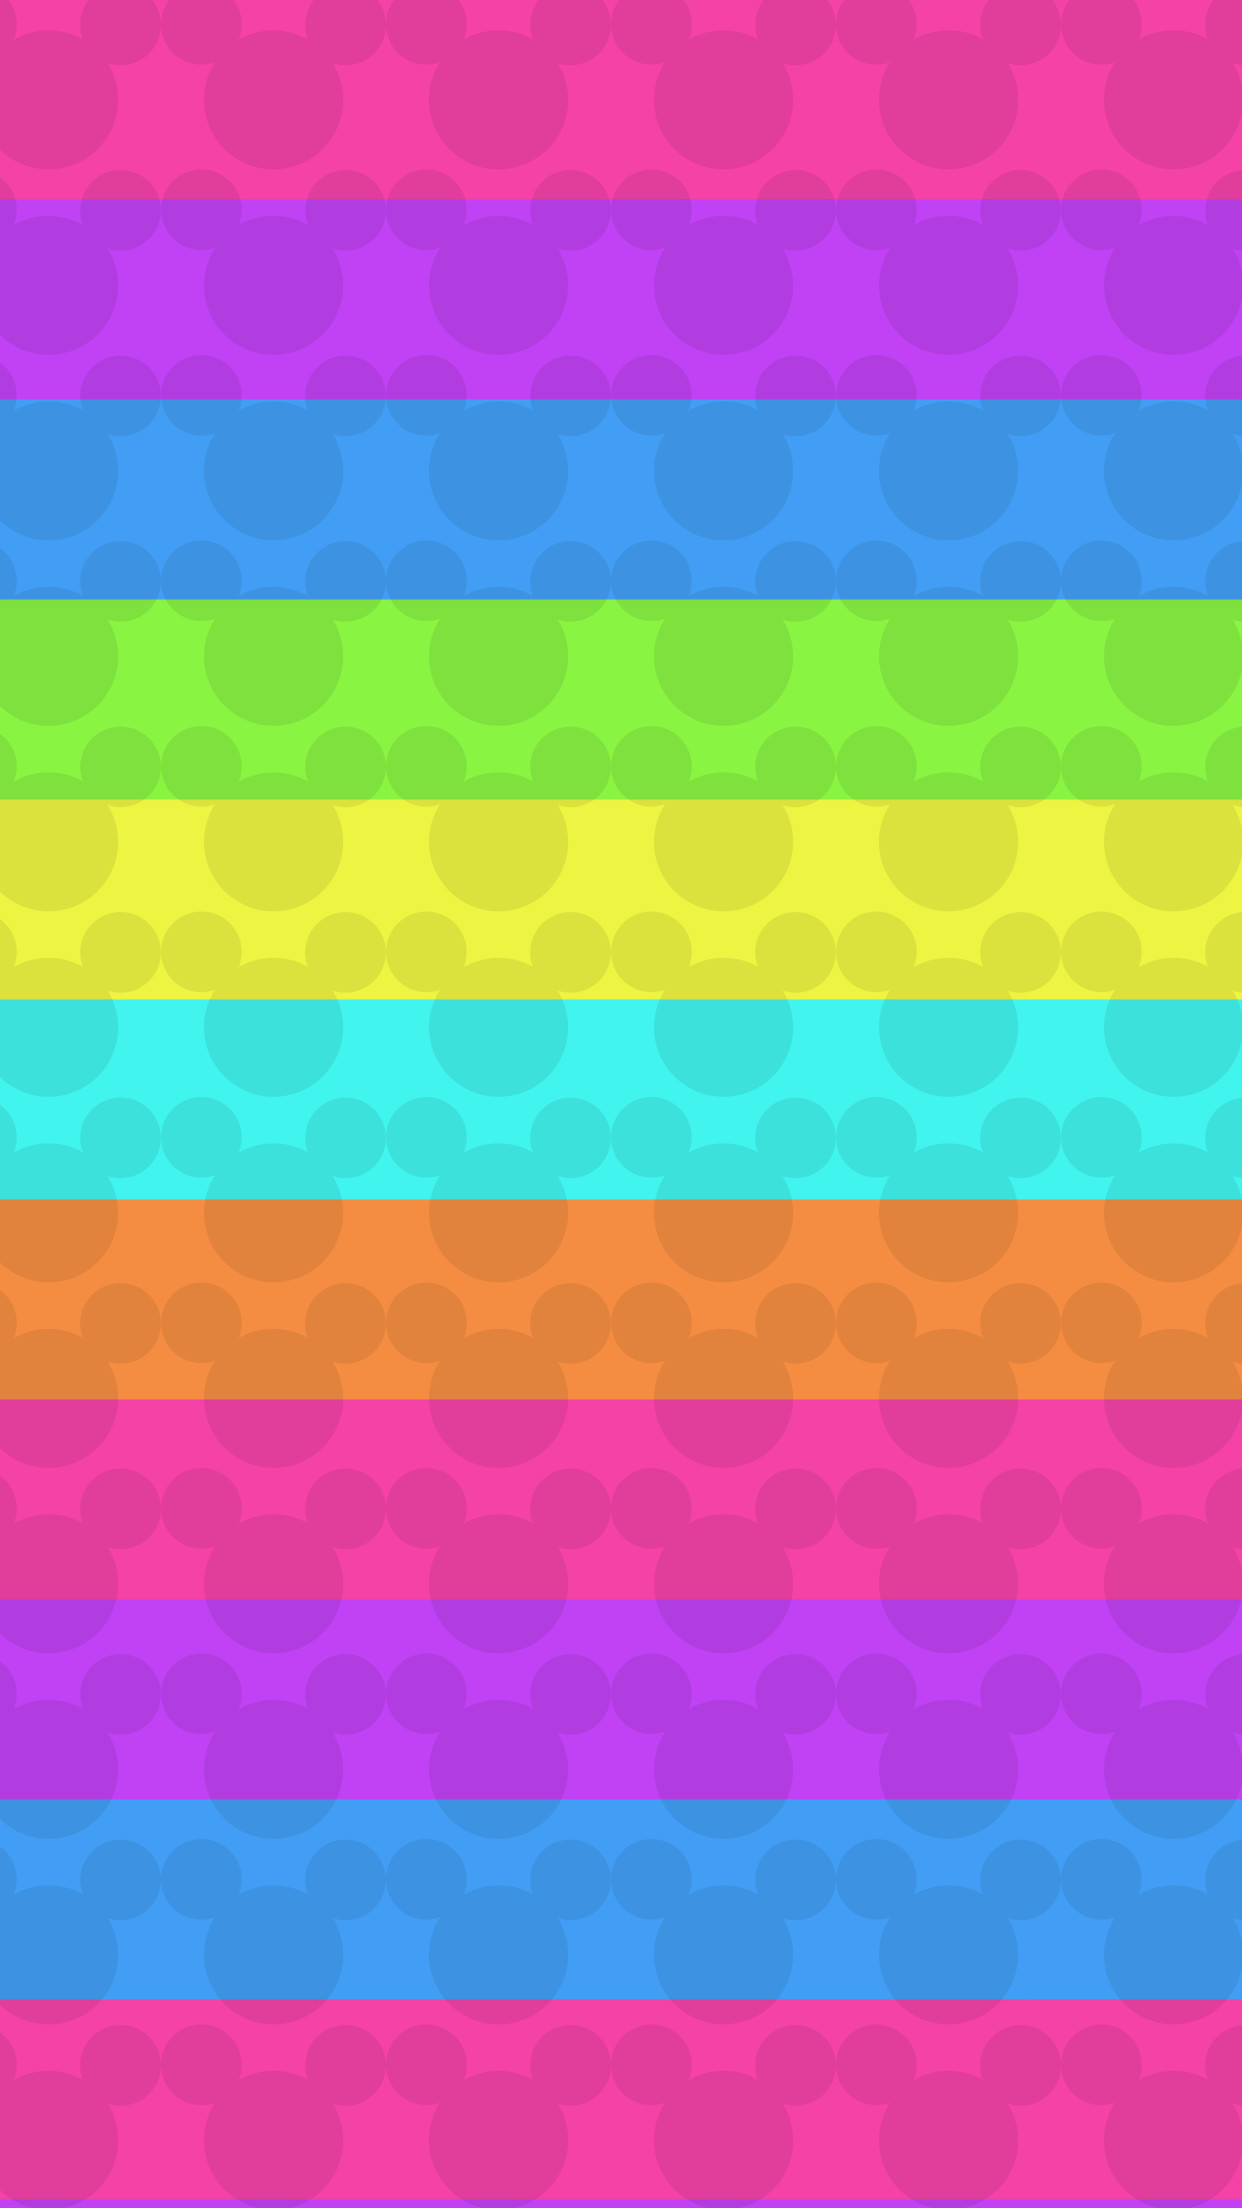 Rainbow Background Wallpaper 61 Images